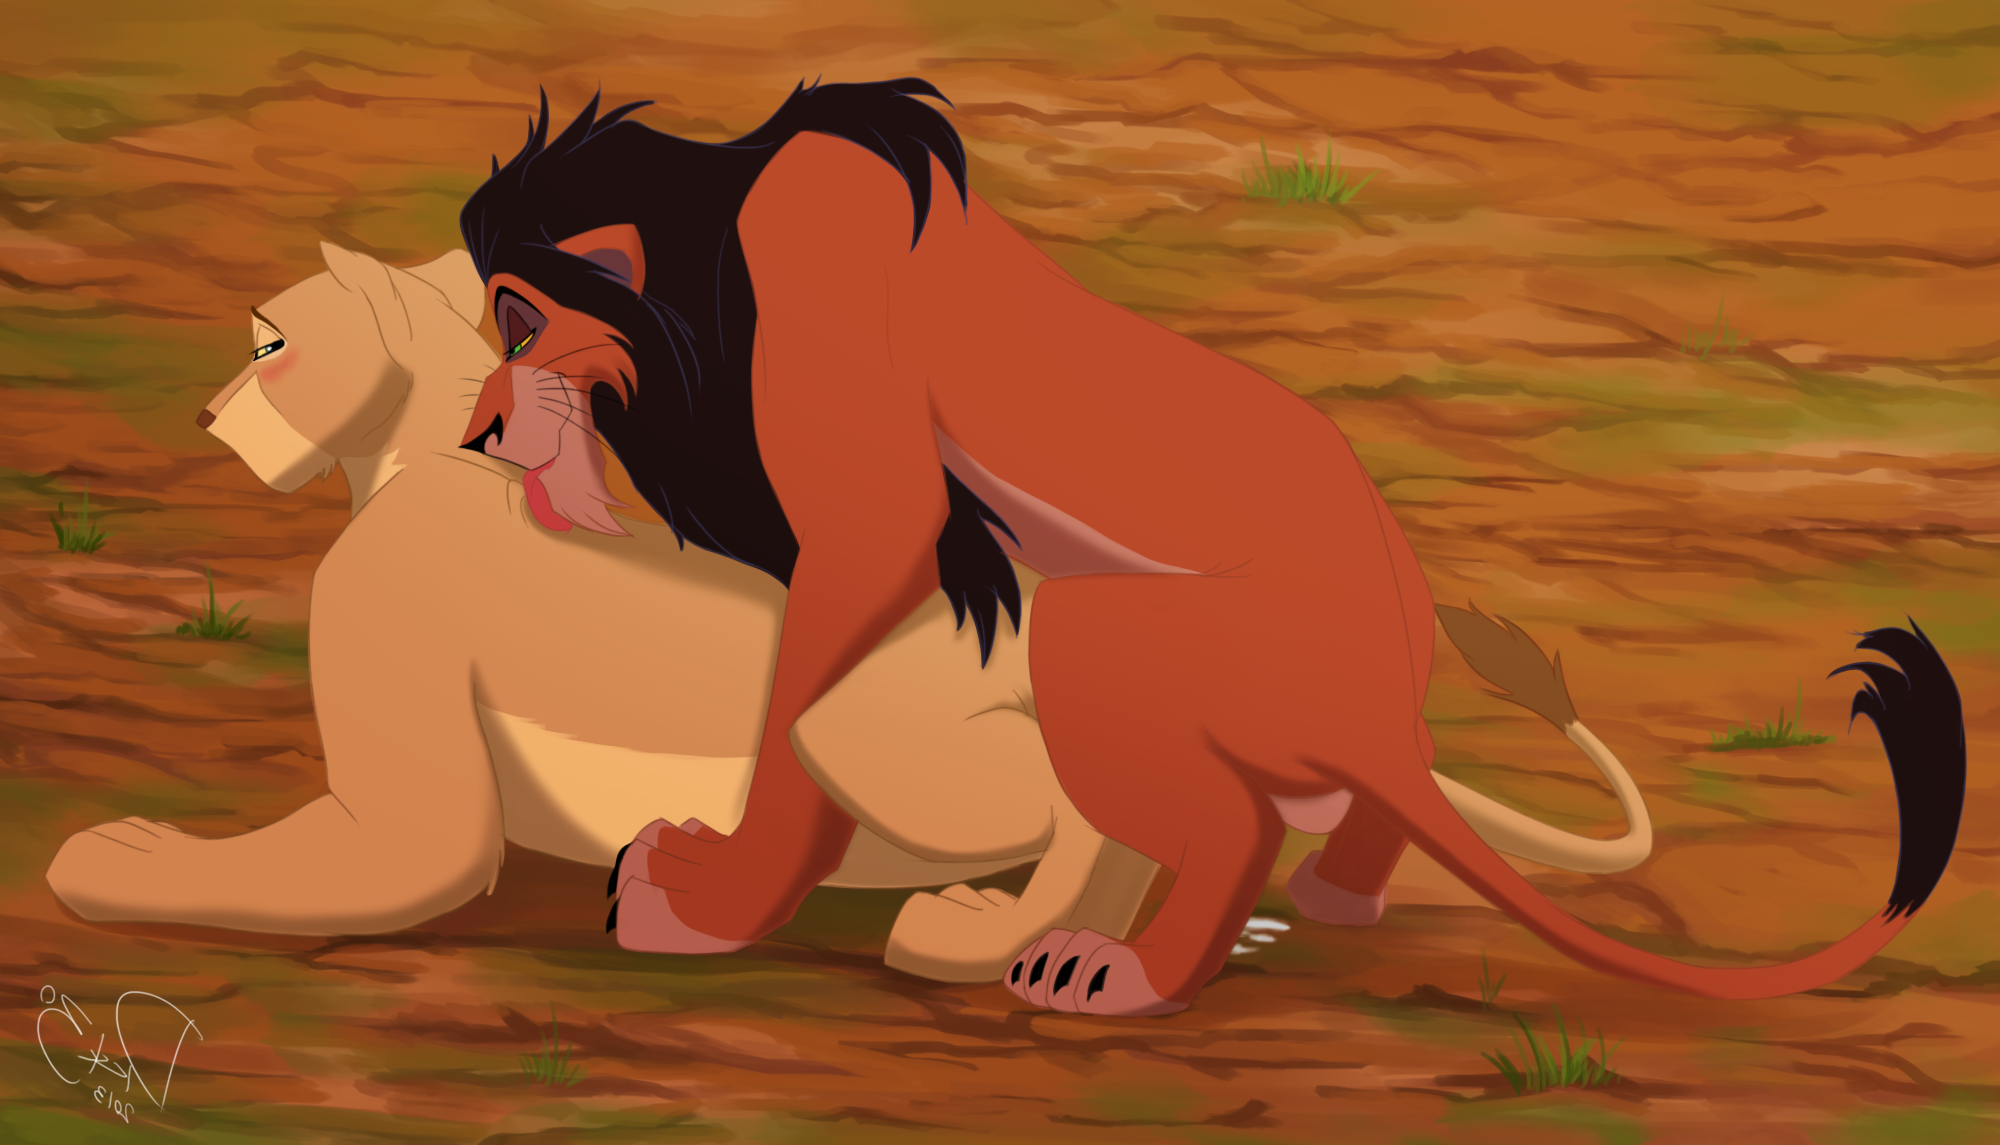 Once and The lion king xxx can